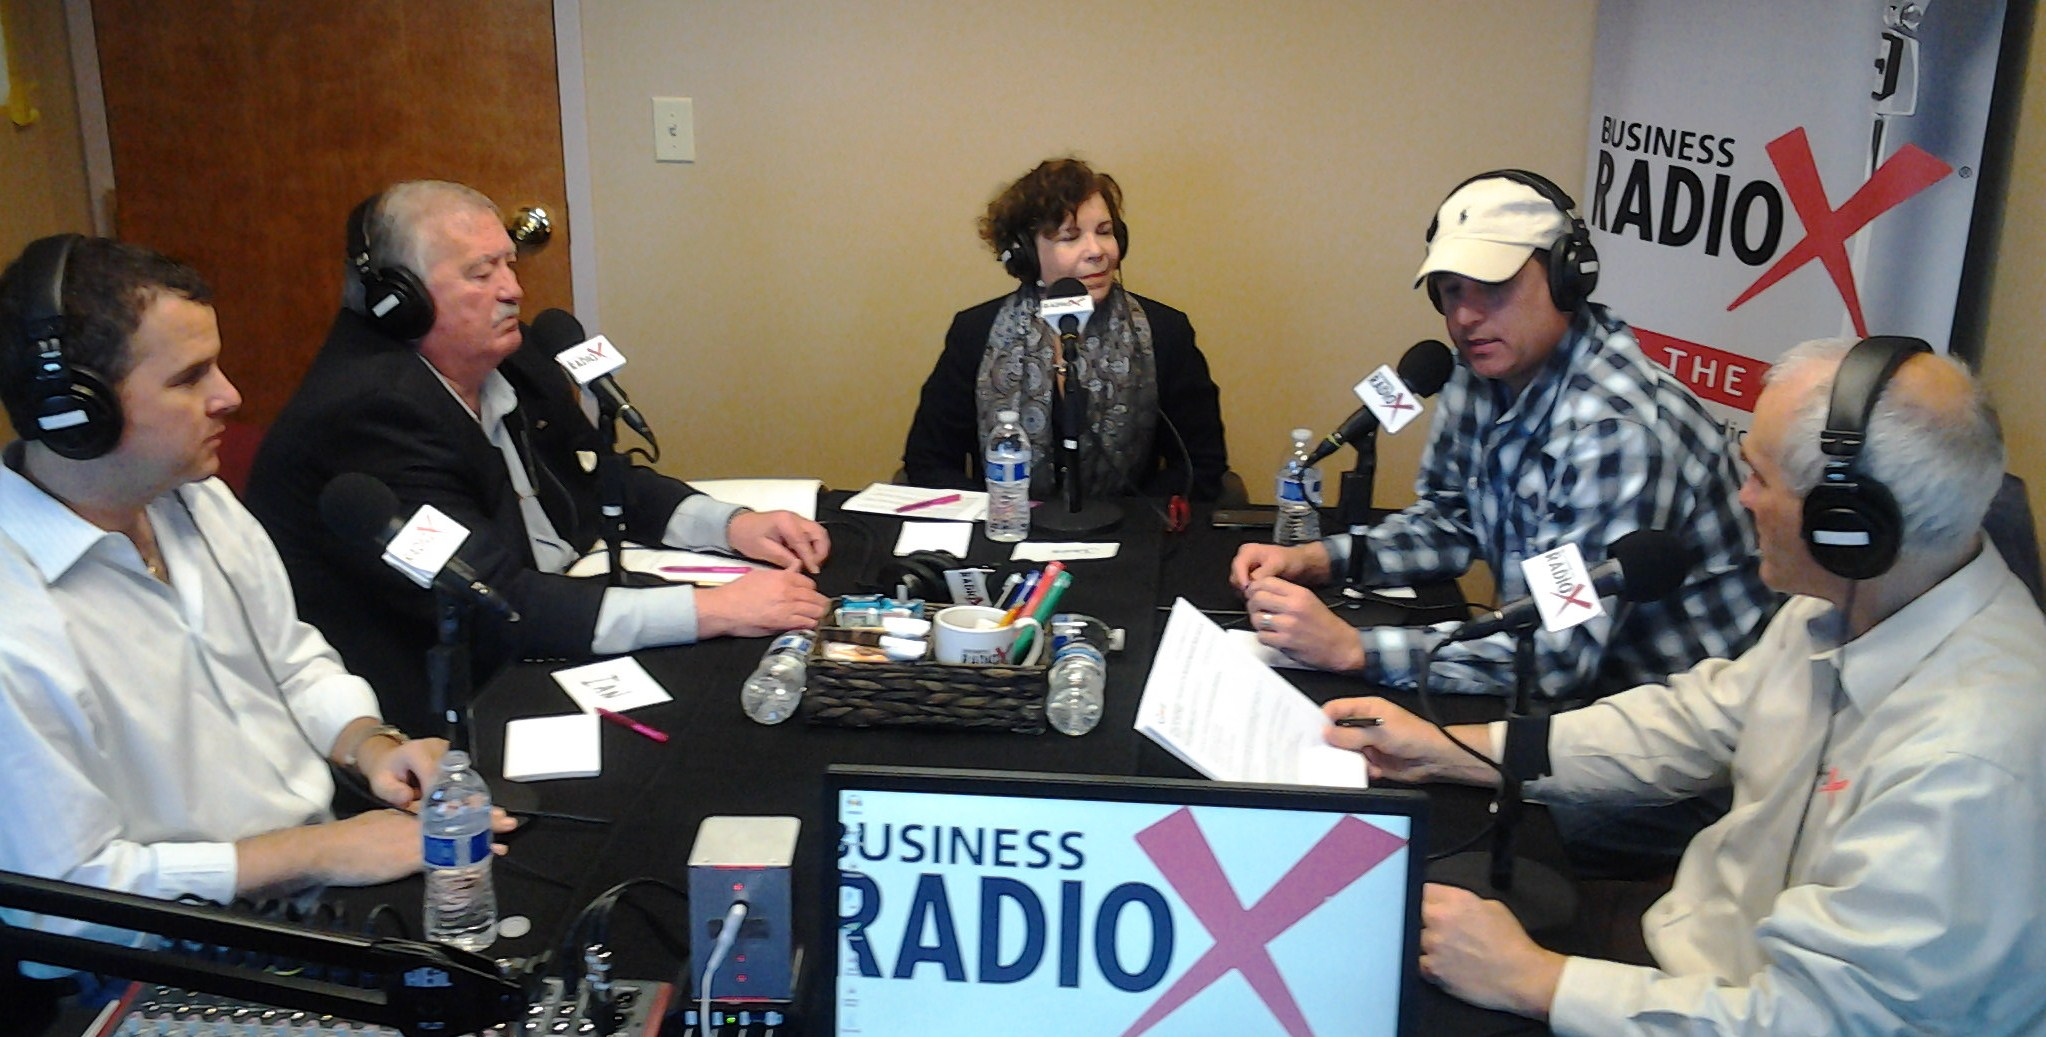 Buckhead Business Radio 12-16-14 Group 4